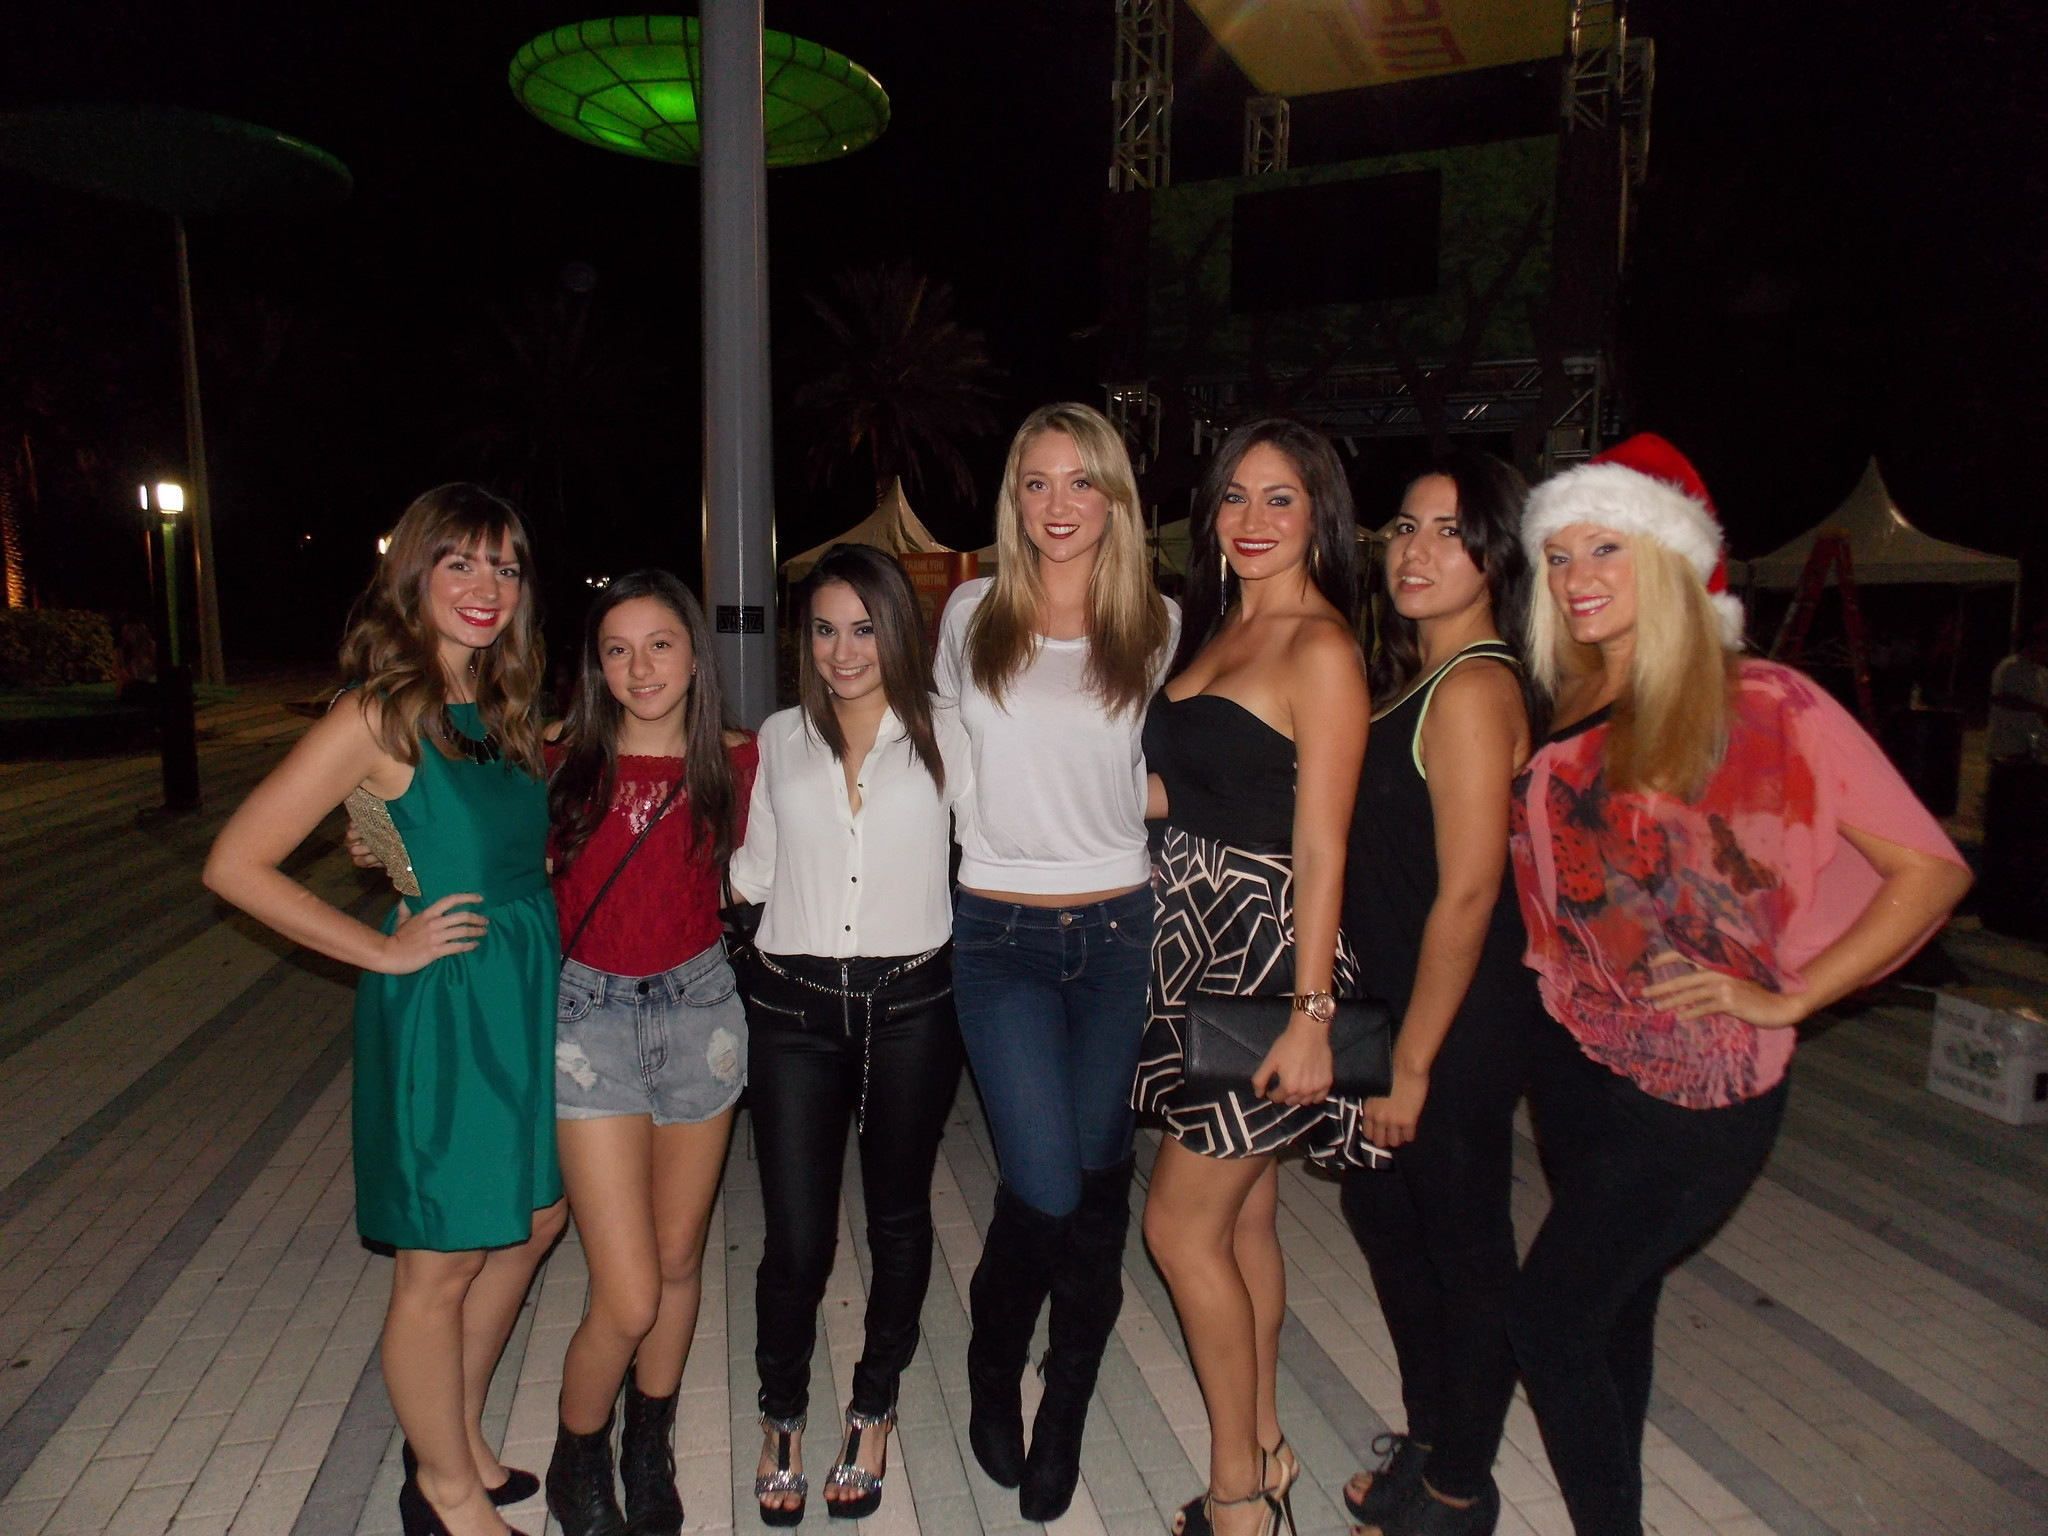 Jingle Ball at BB&T Center in Sunrise - JingleBall fun